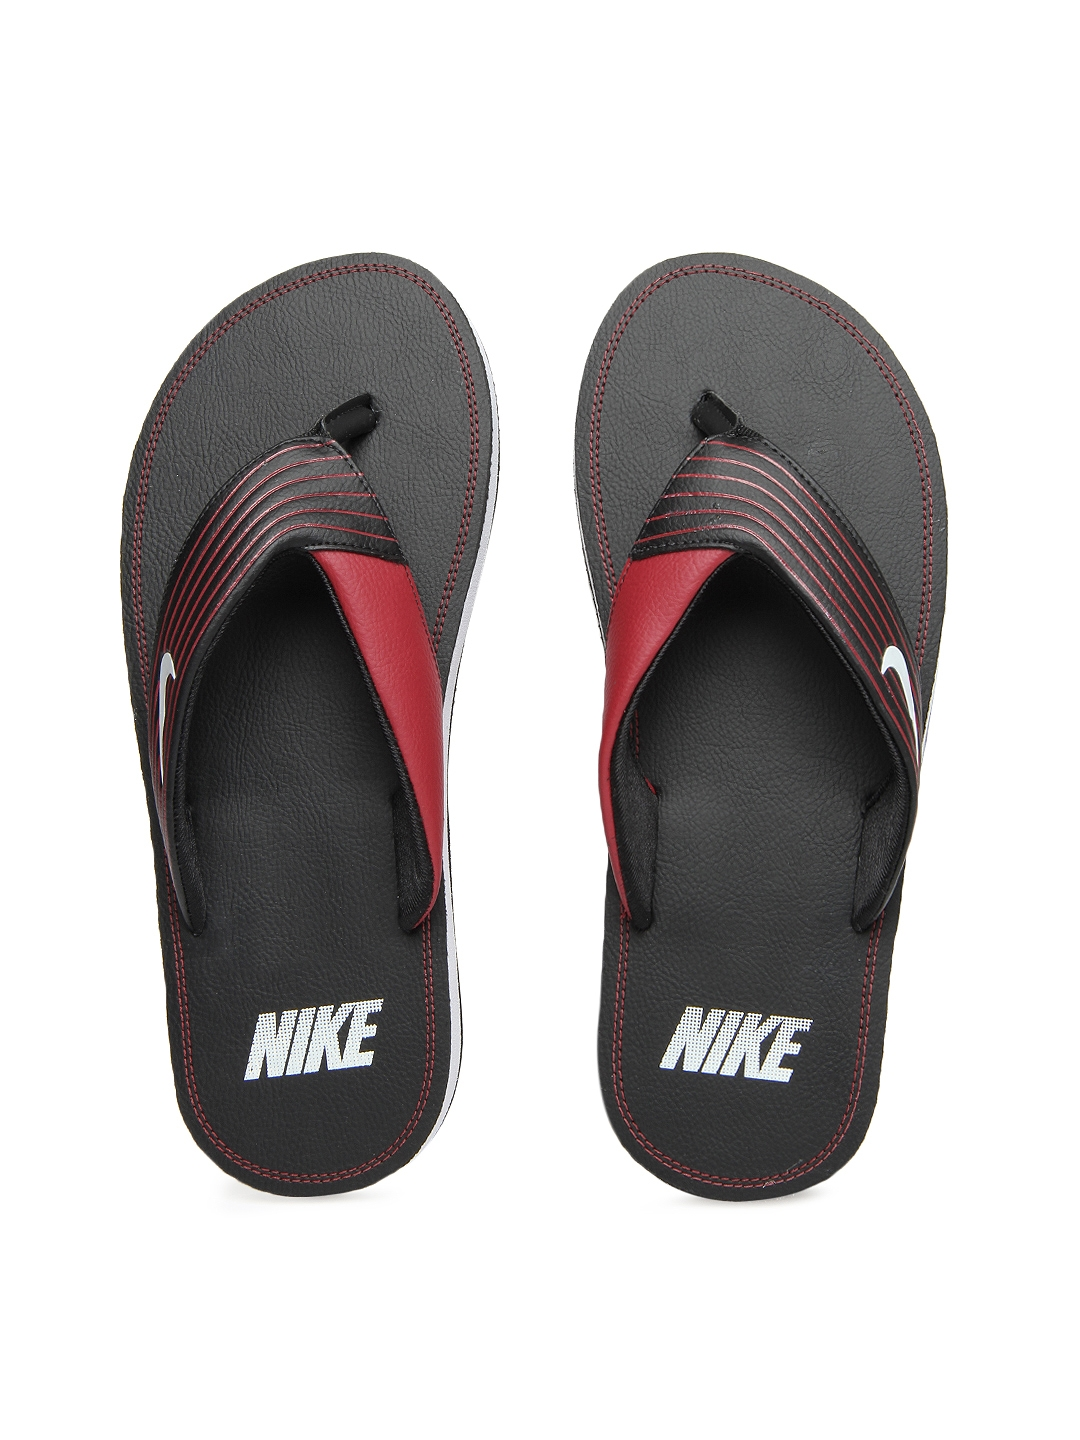 4848510ba6506a Buy Nike Men Black Chroma Thong III Flip Flops - Flip Flops for Men ...